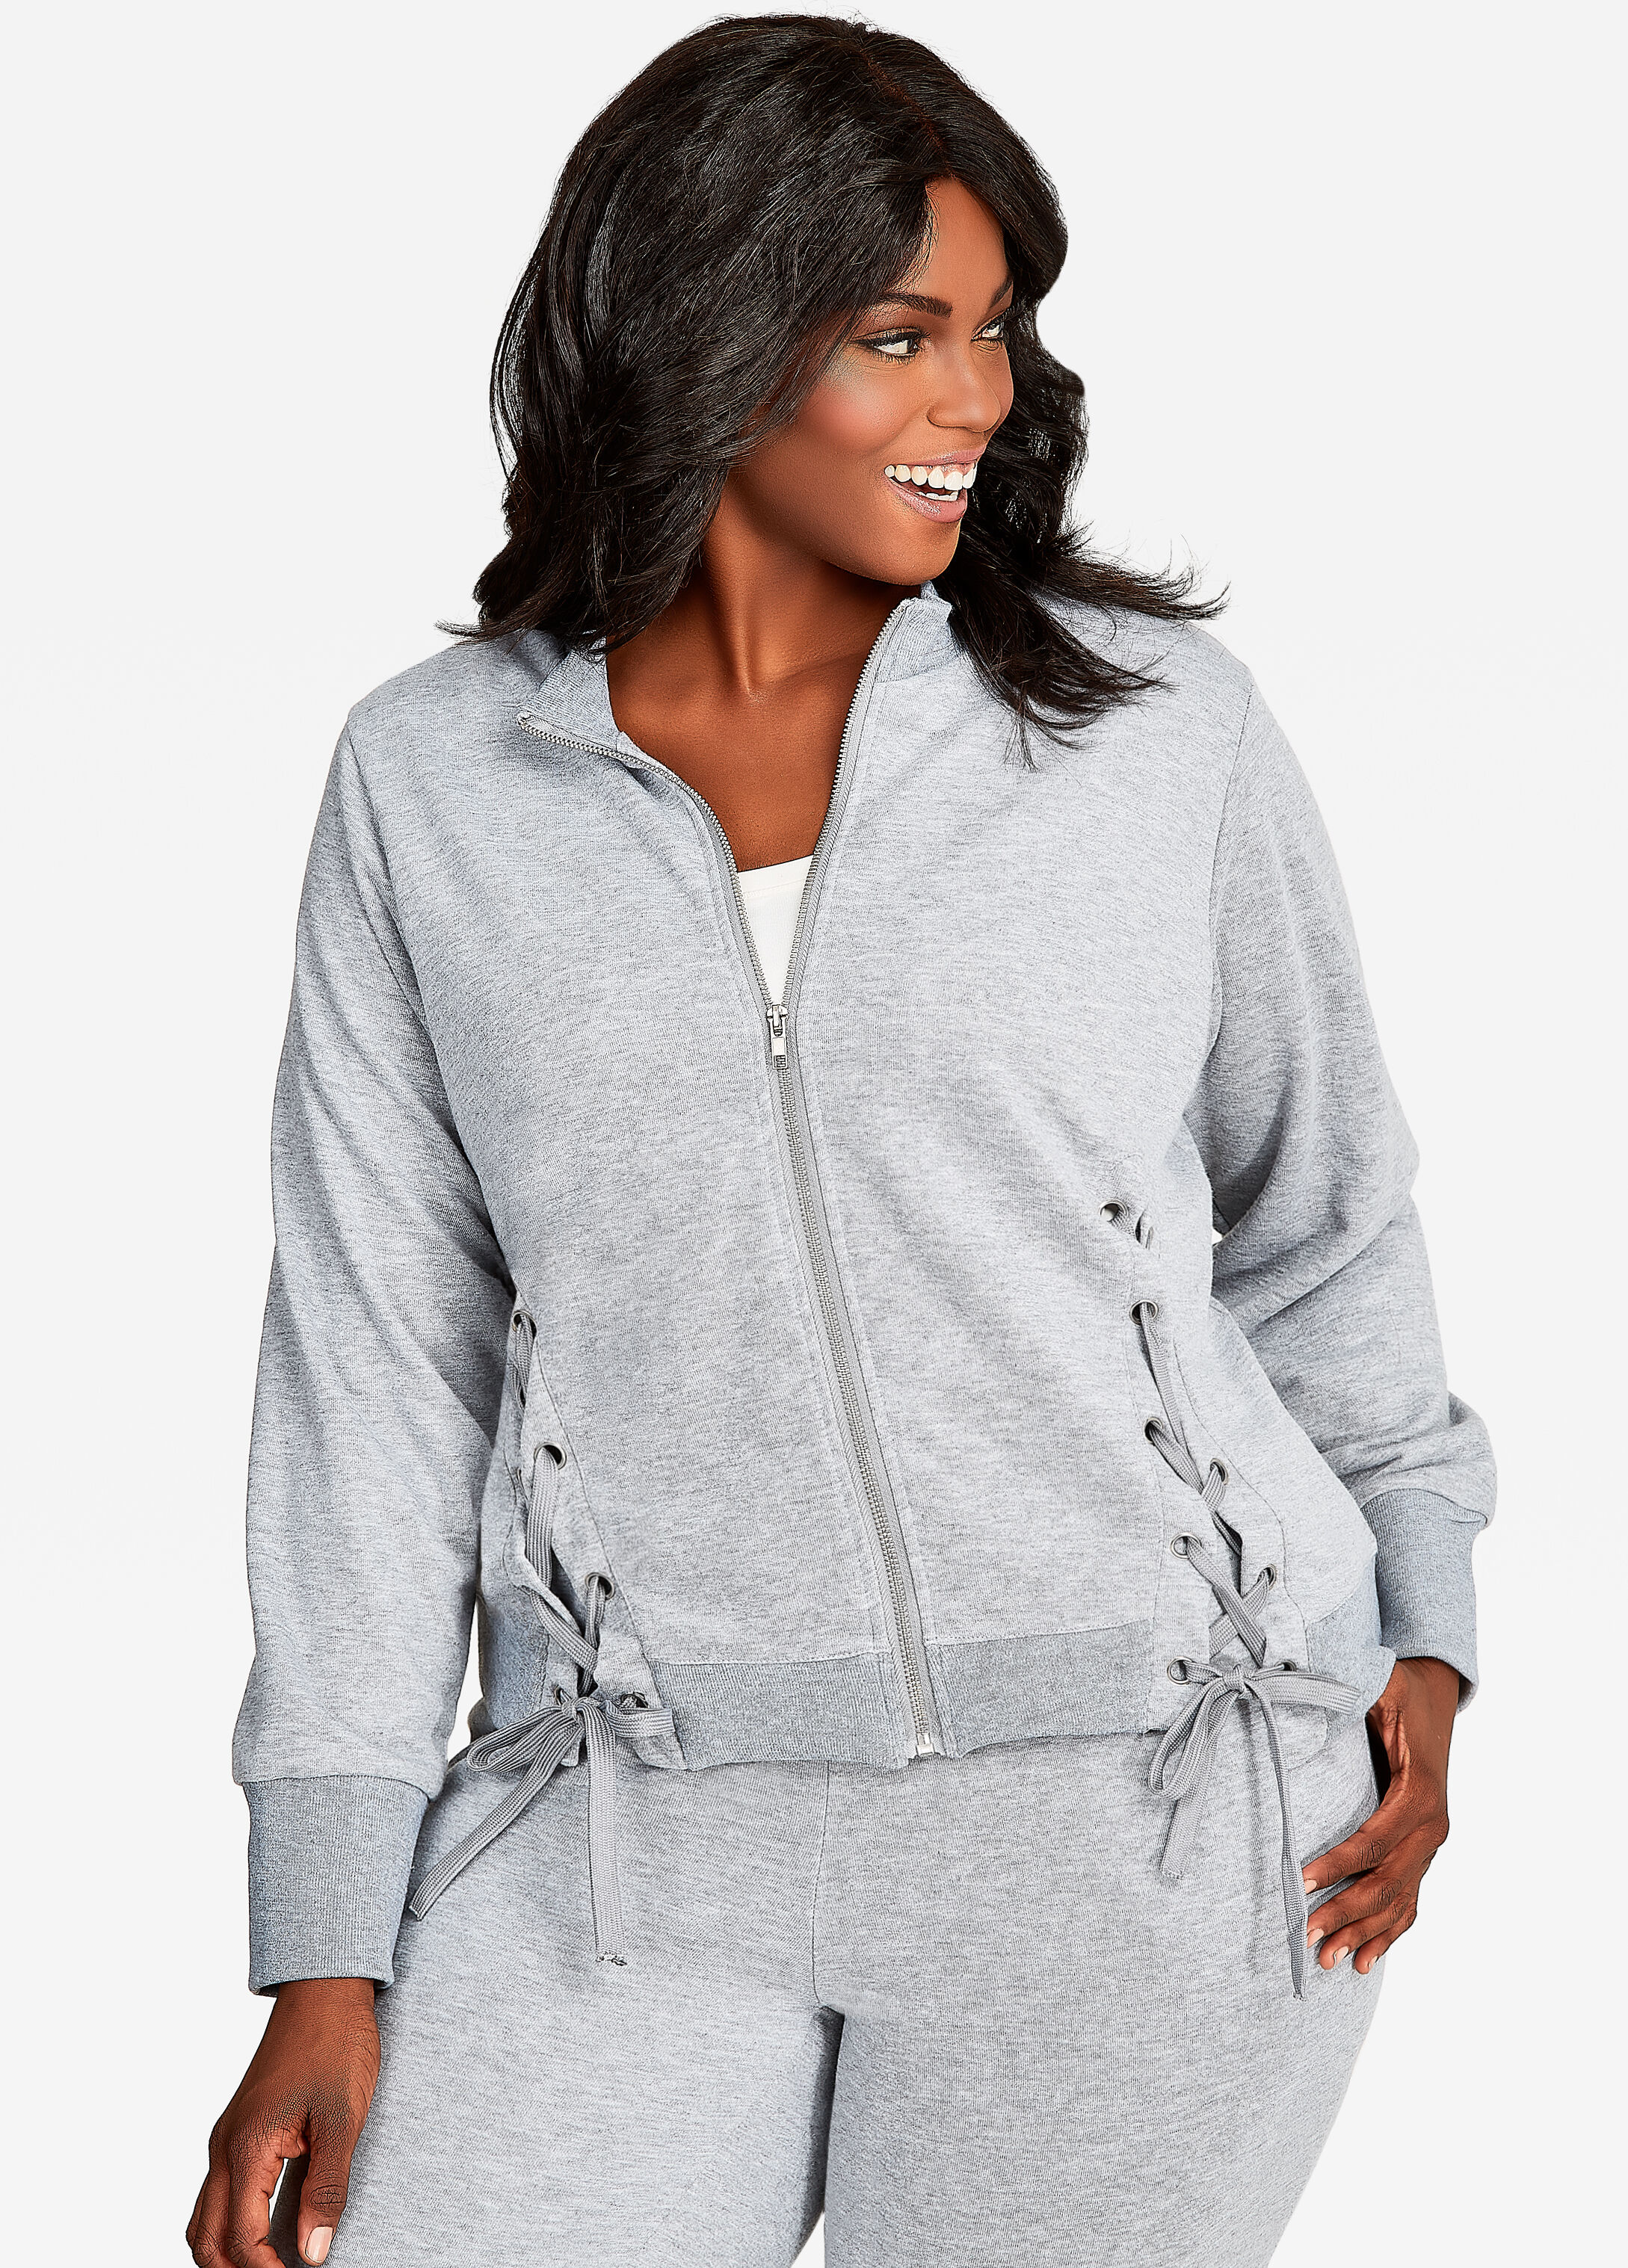 Zip-Up Track Jacket With Lace-Up